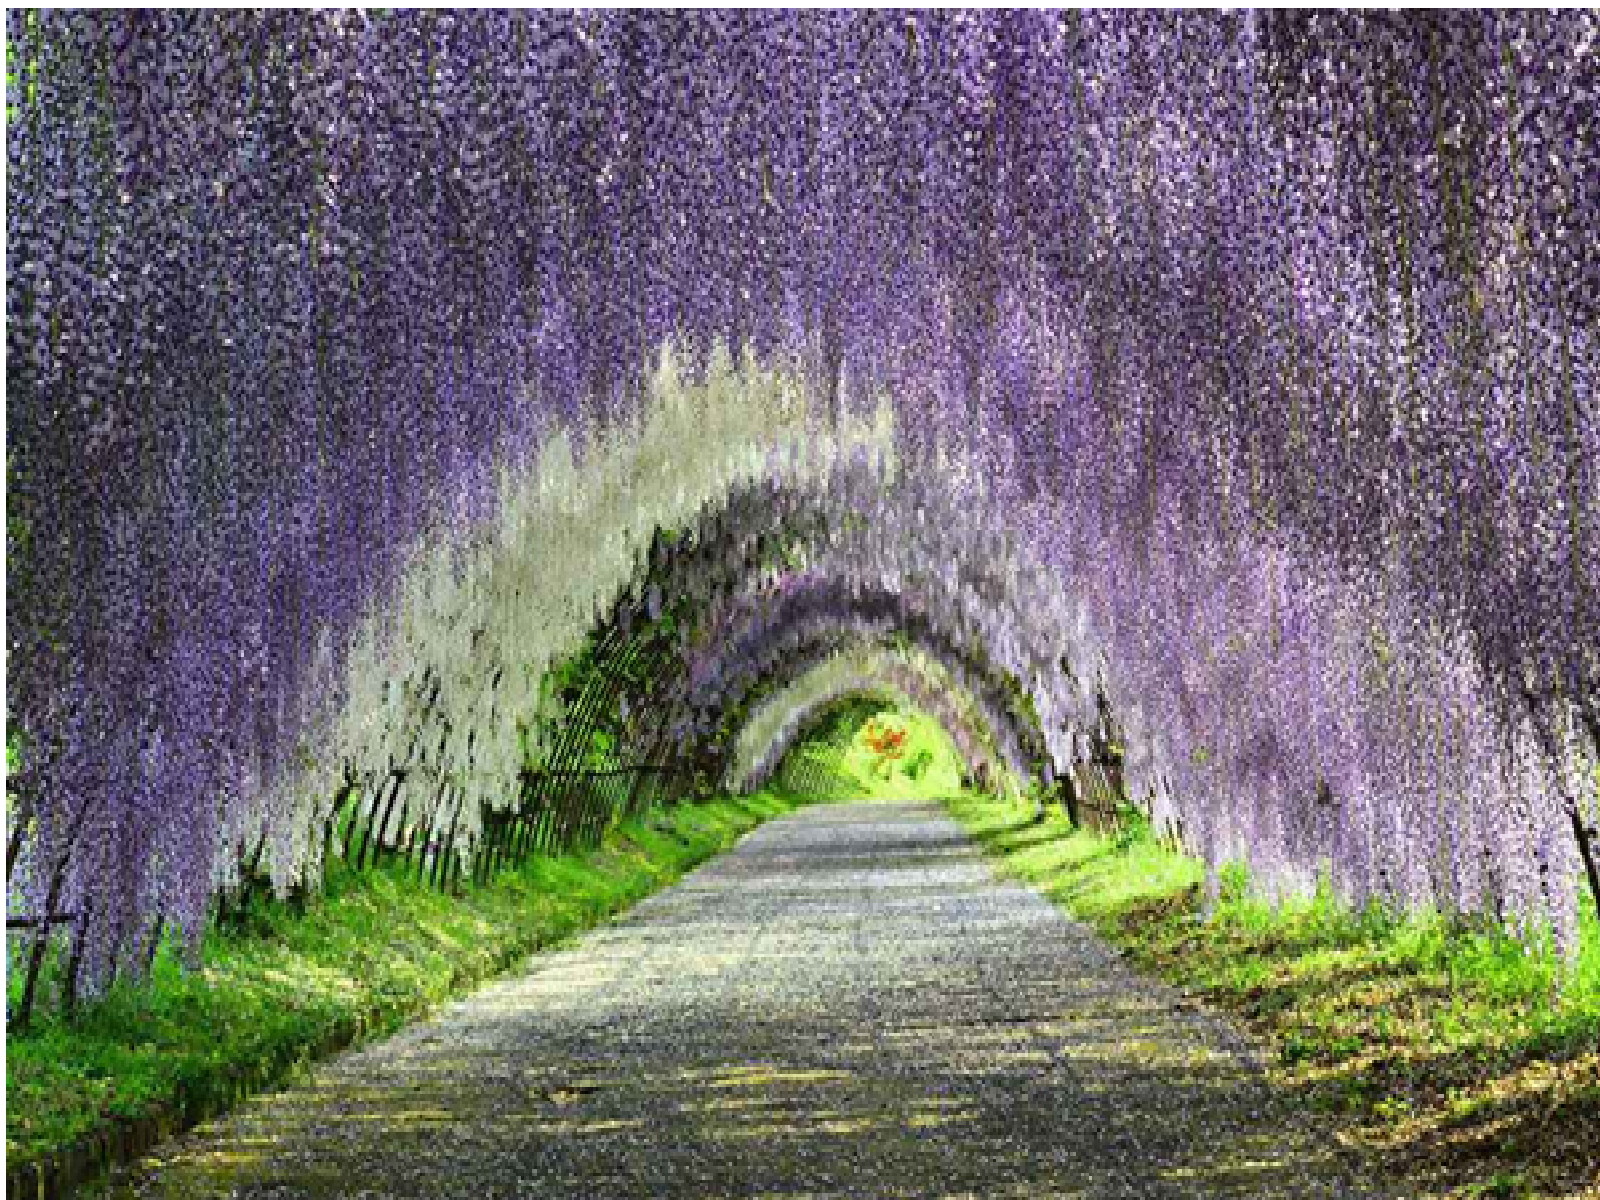 The Wisteria Flower Tunnel, Japan